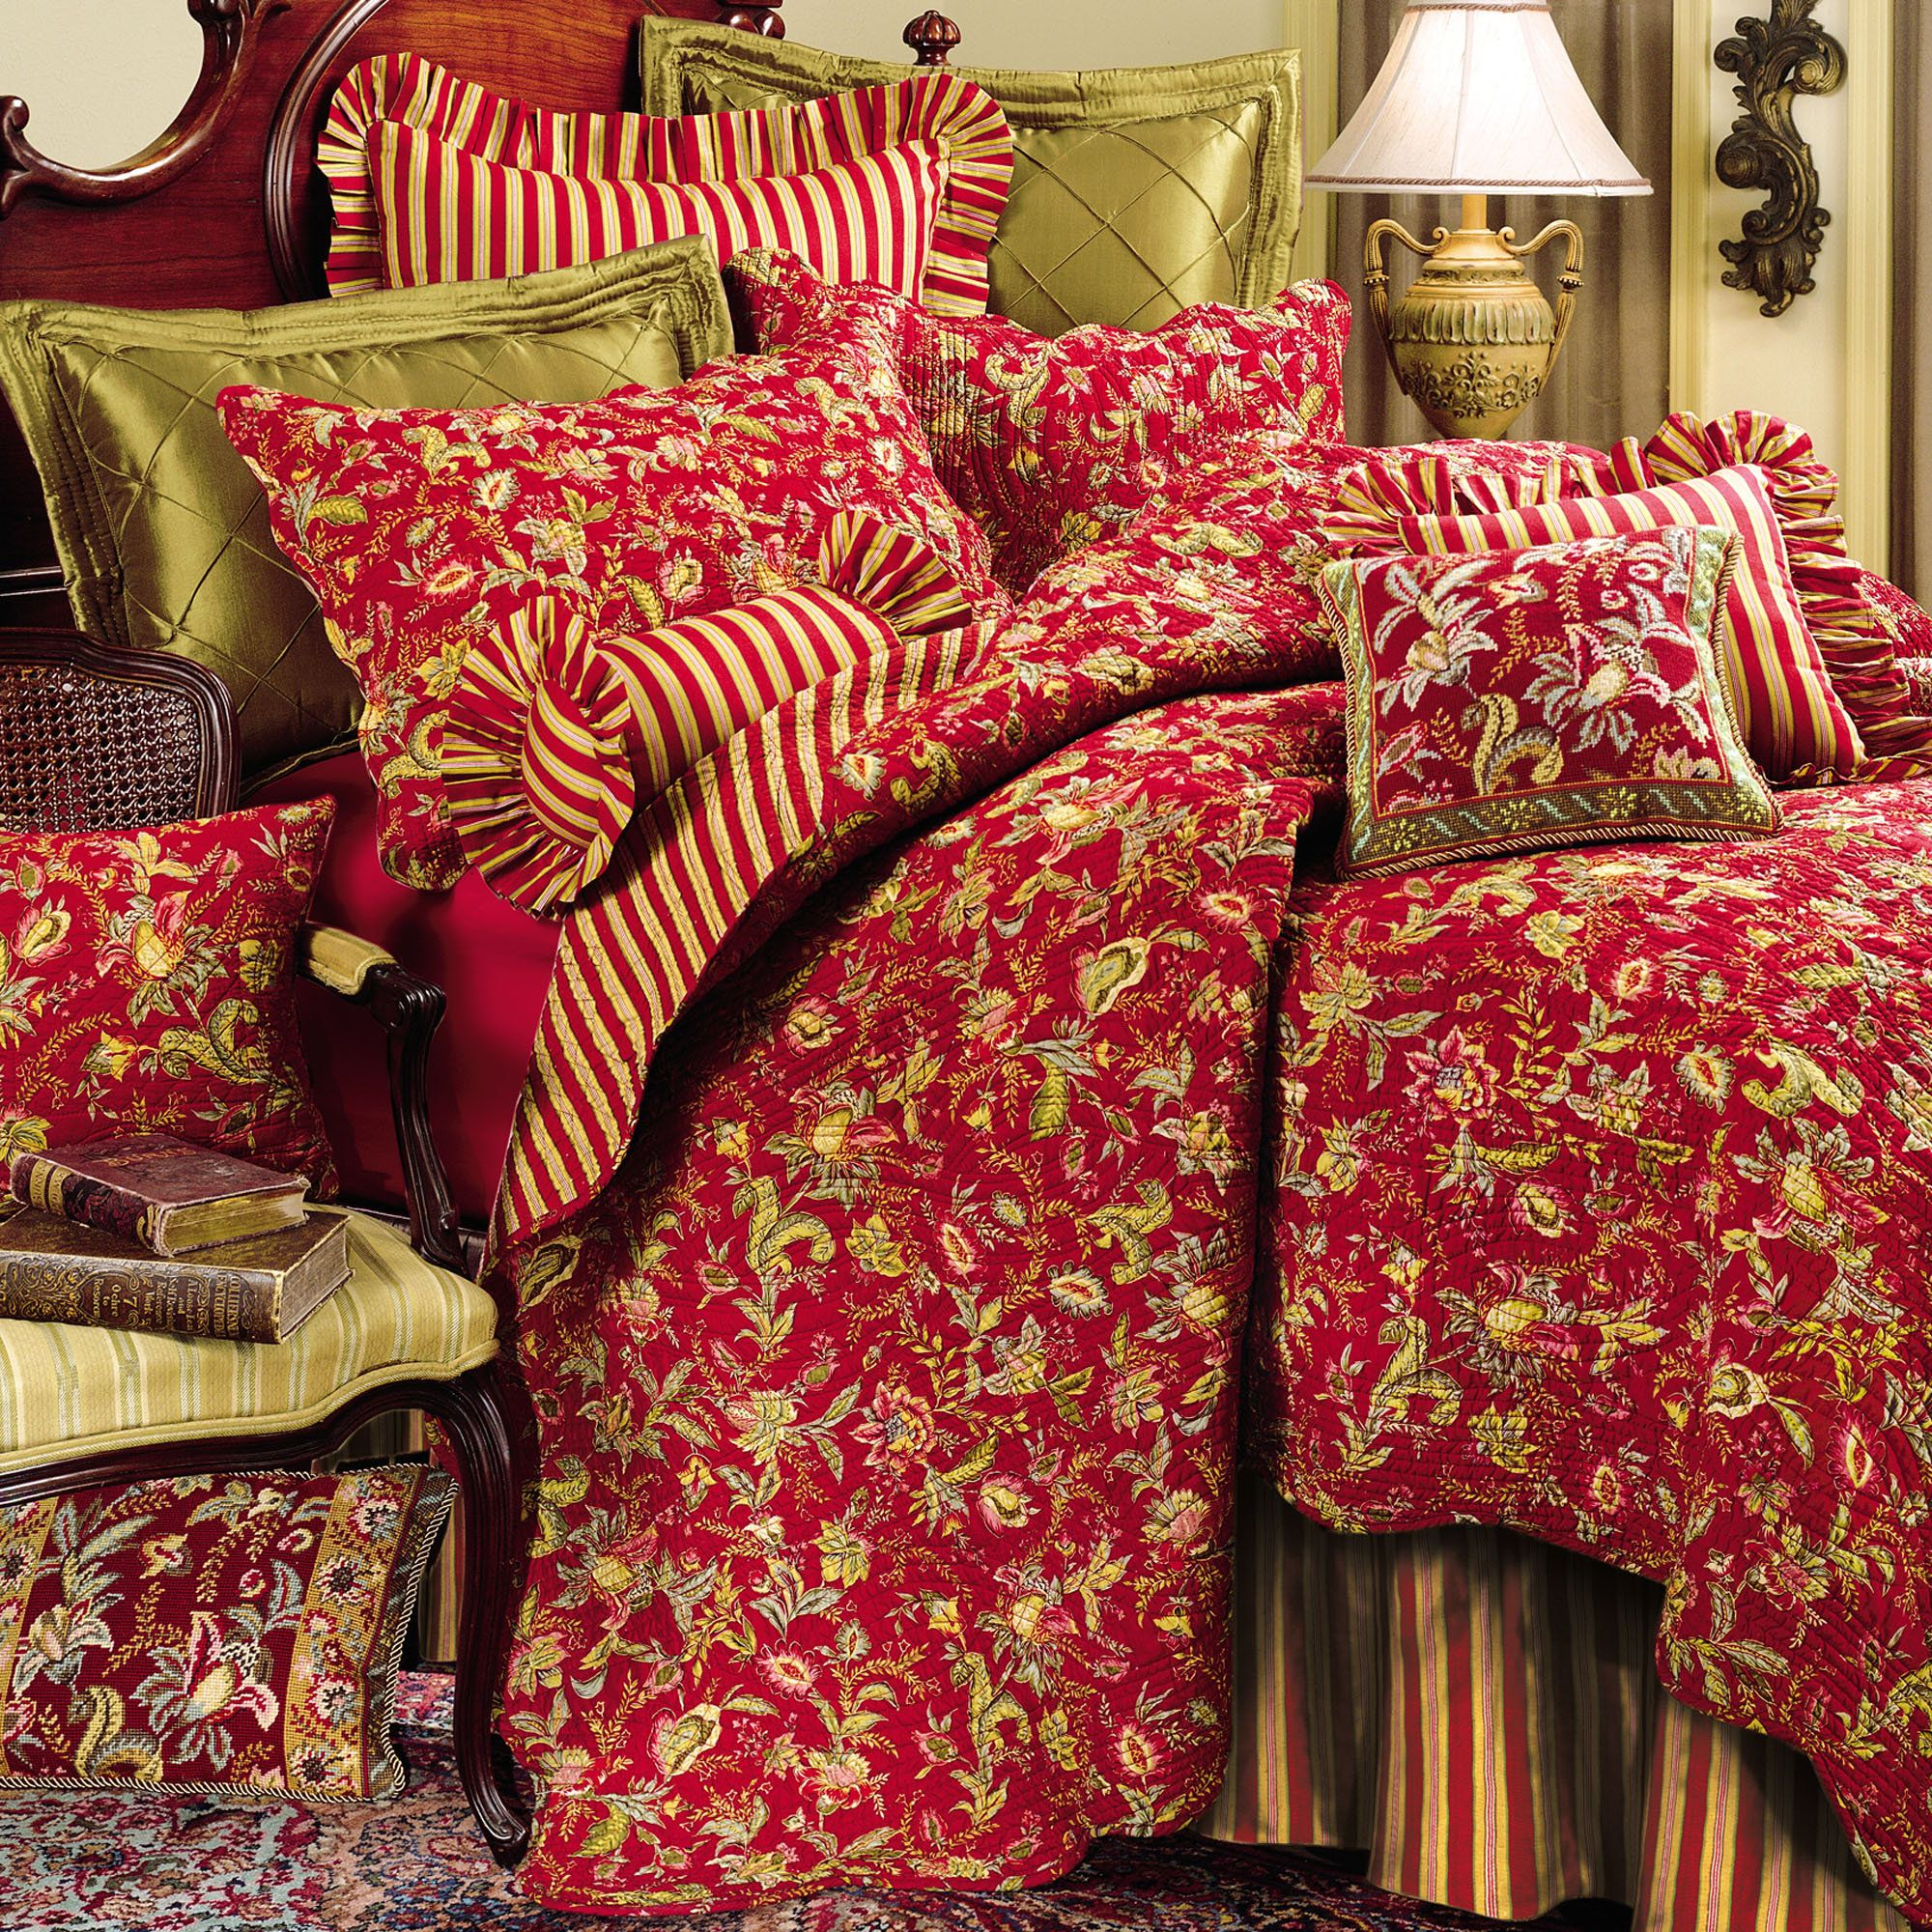 floral comforters | Home > Caspienne Floral Leaf Red Quilt Bedding ... : red quilts bedding - Adamdwight.com